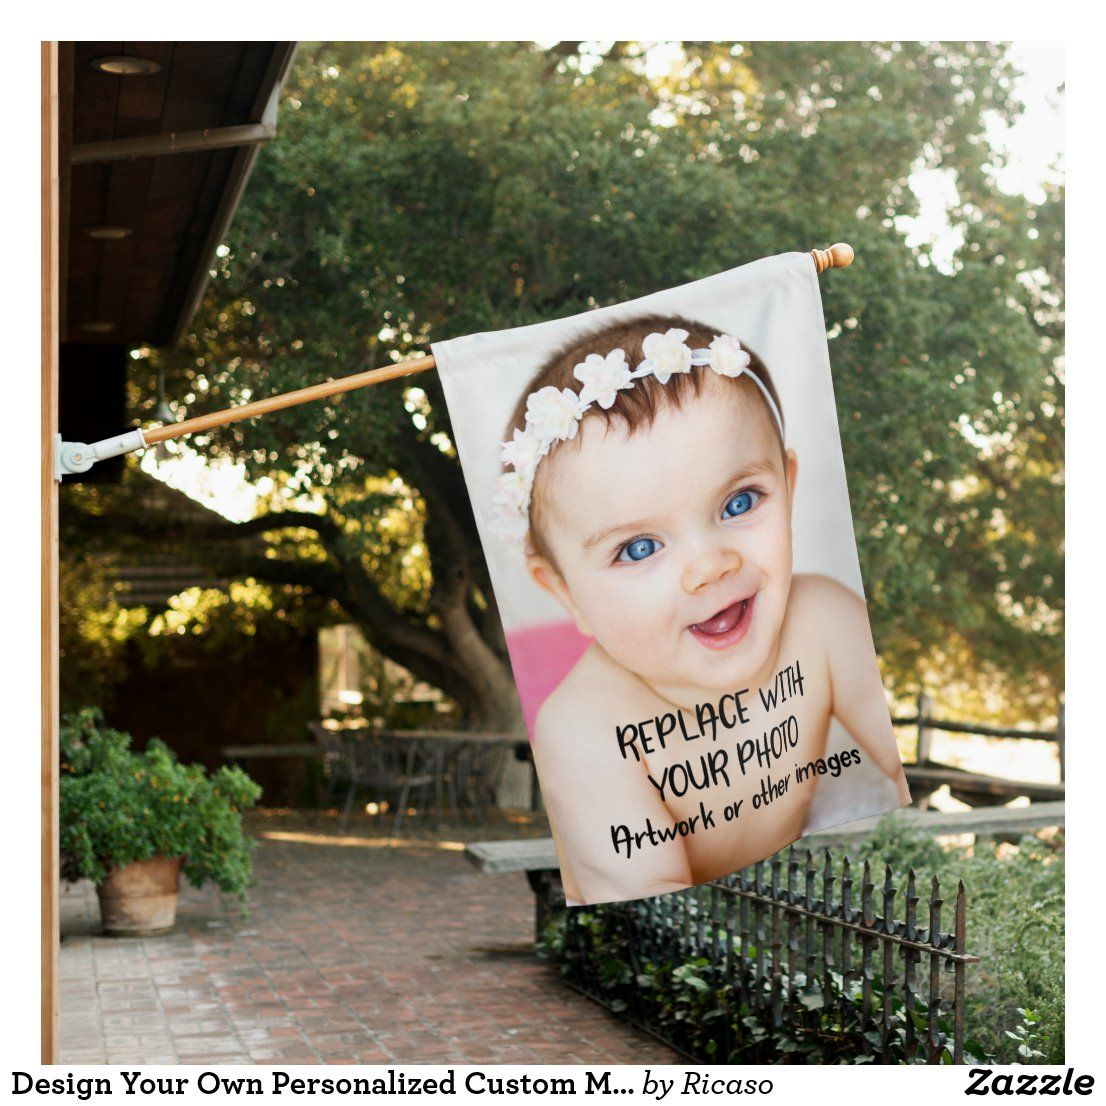 Design Your Own Personalized Custom Made House Flag Zazzle Com Personalized Custom Design Your Own House Flags